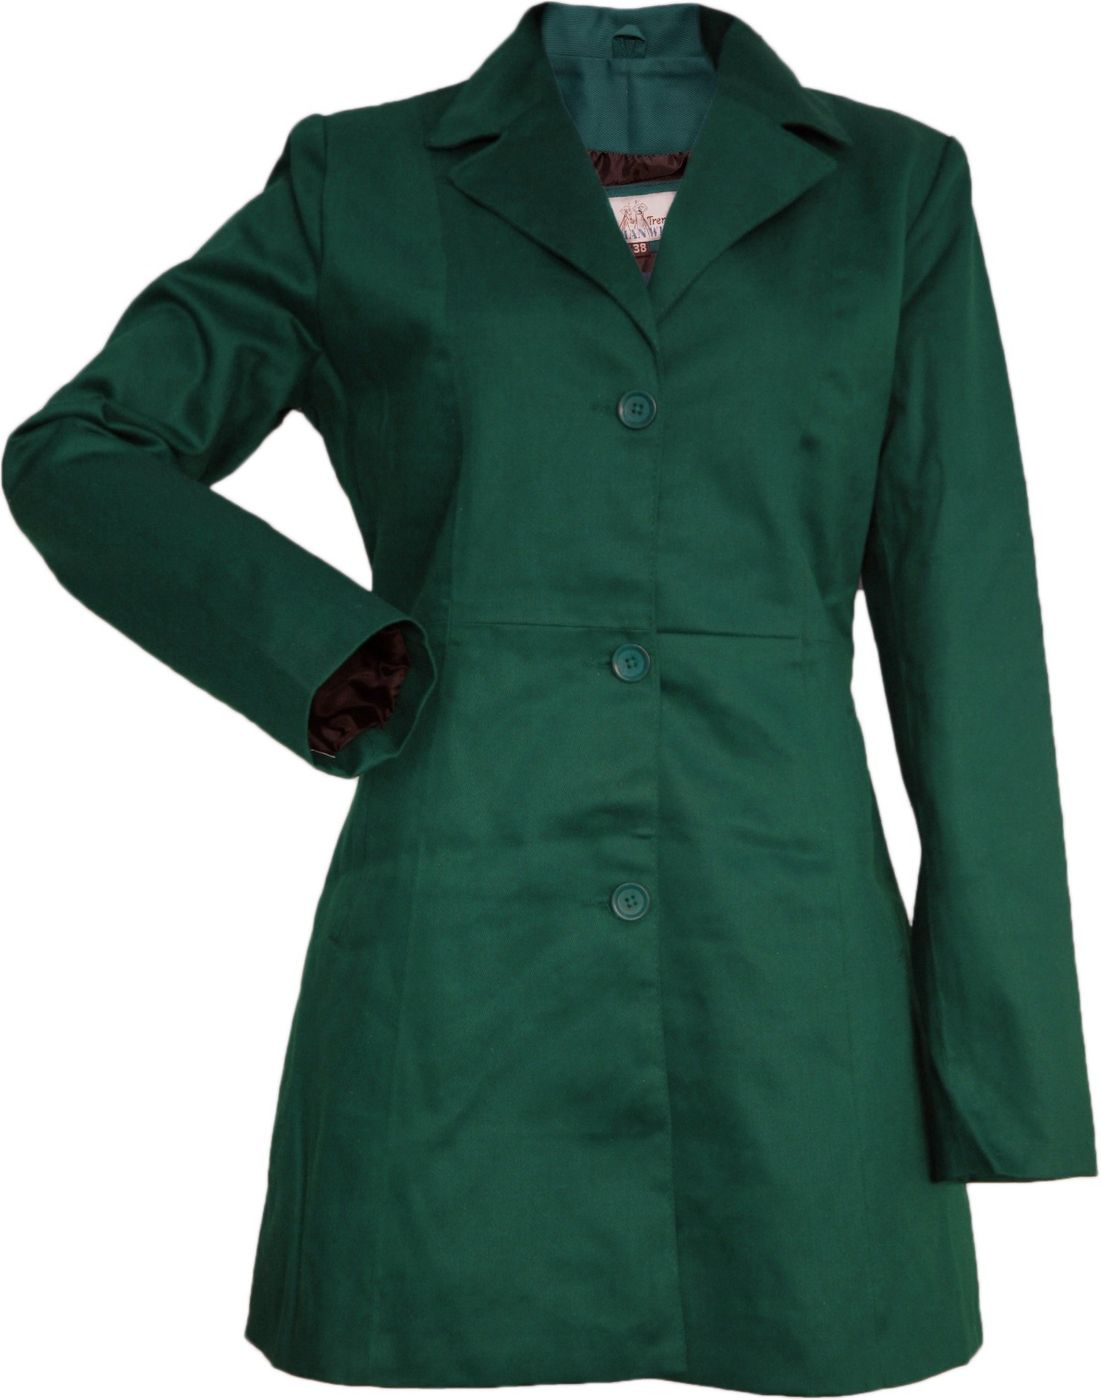 Aus Damen German Baumwolle Grün Mantel Trenchcoat Wear RIwqnHw8